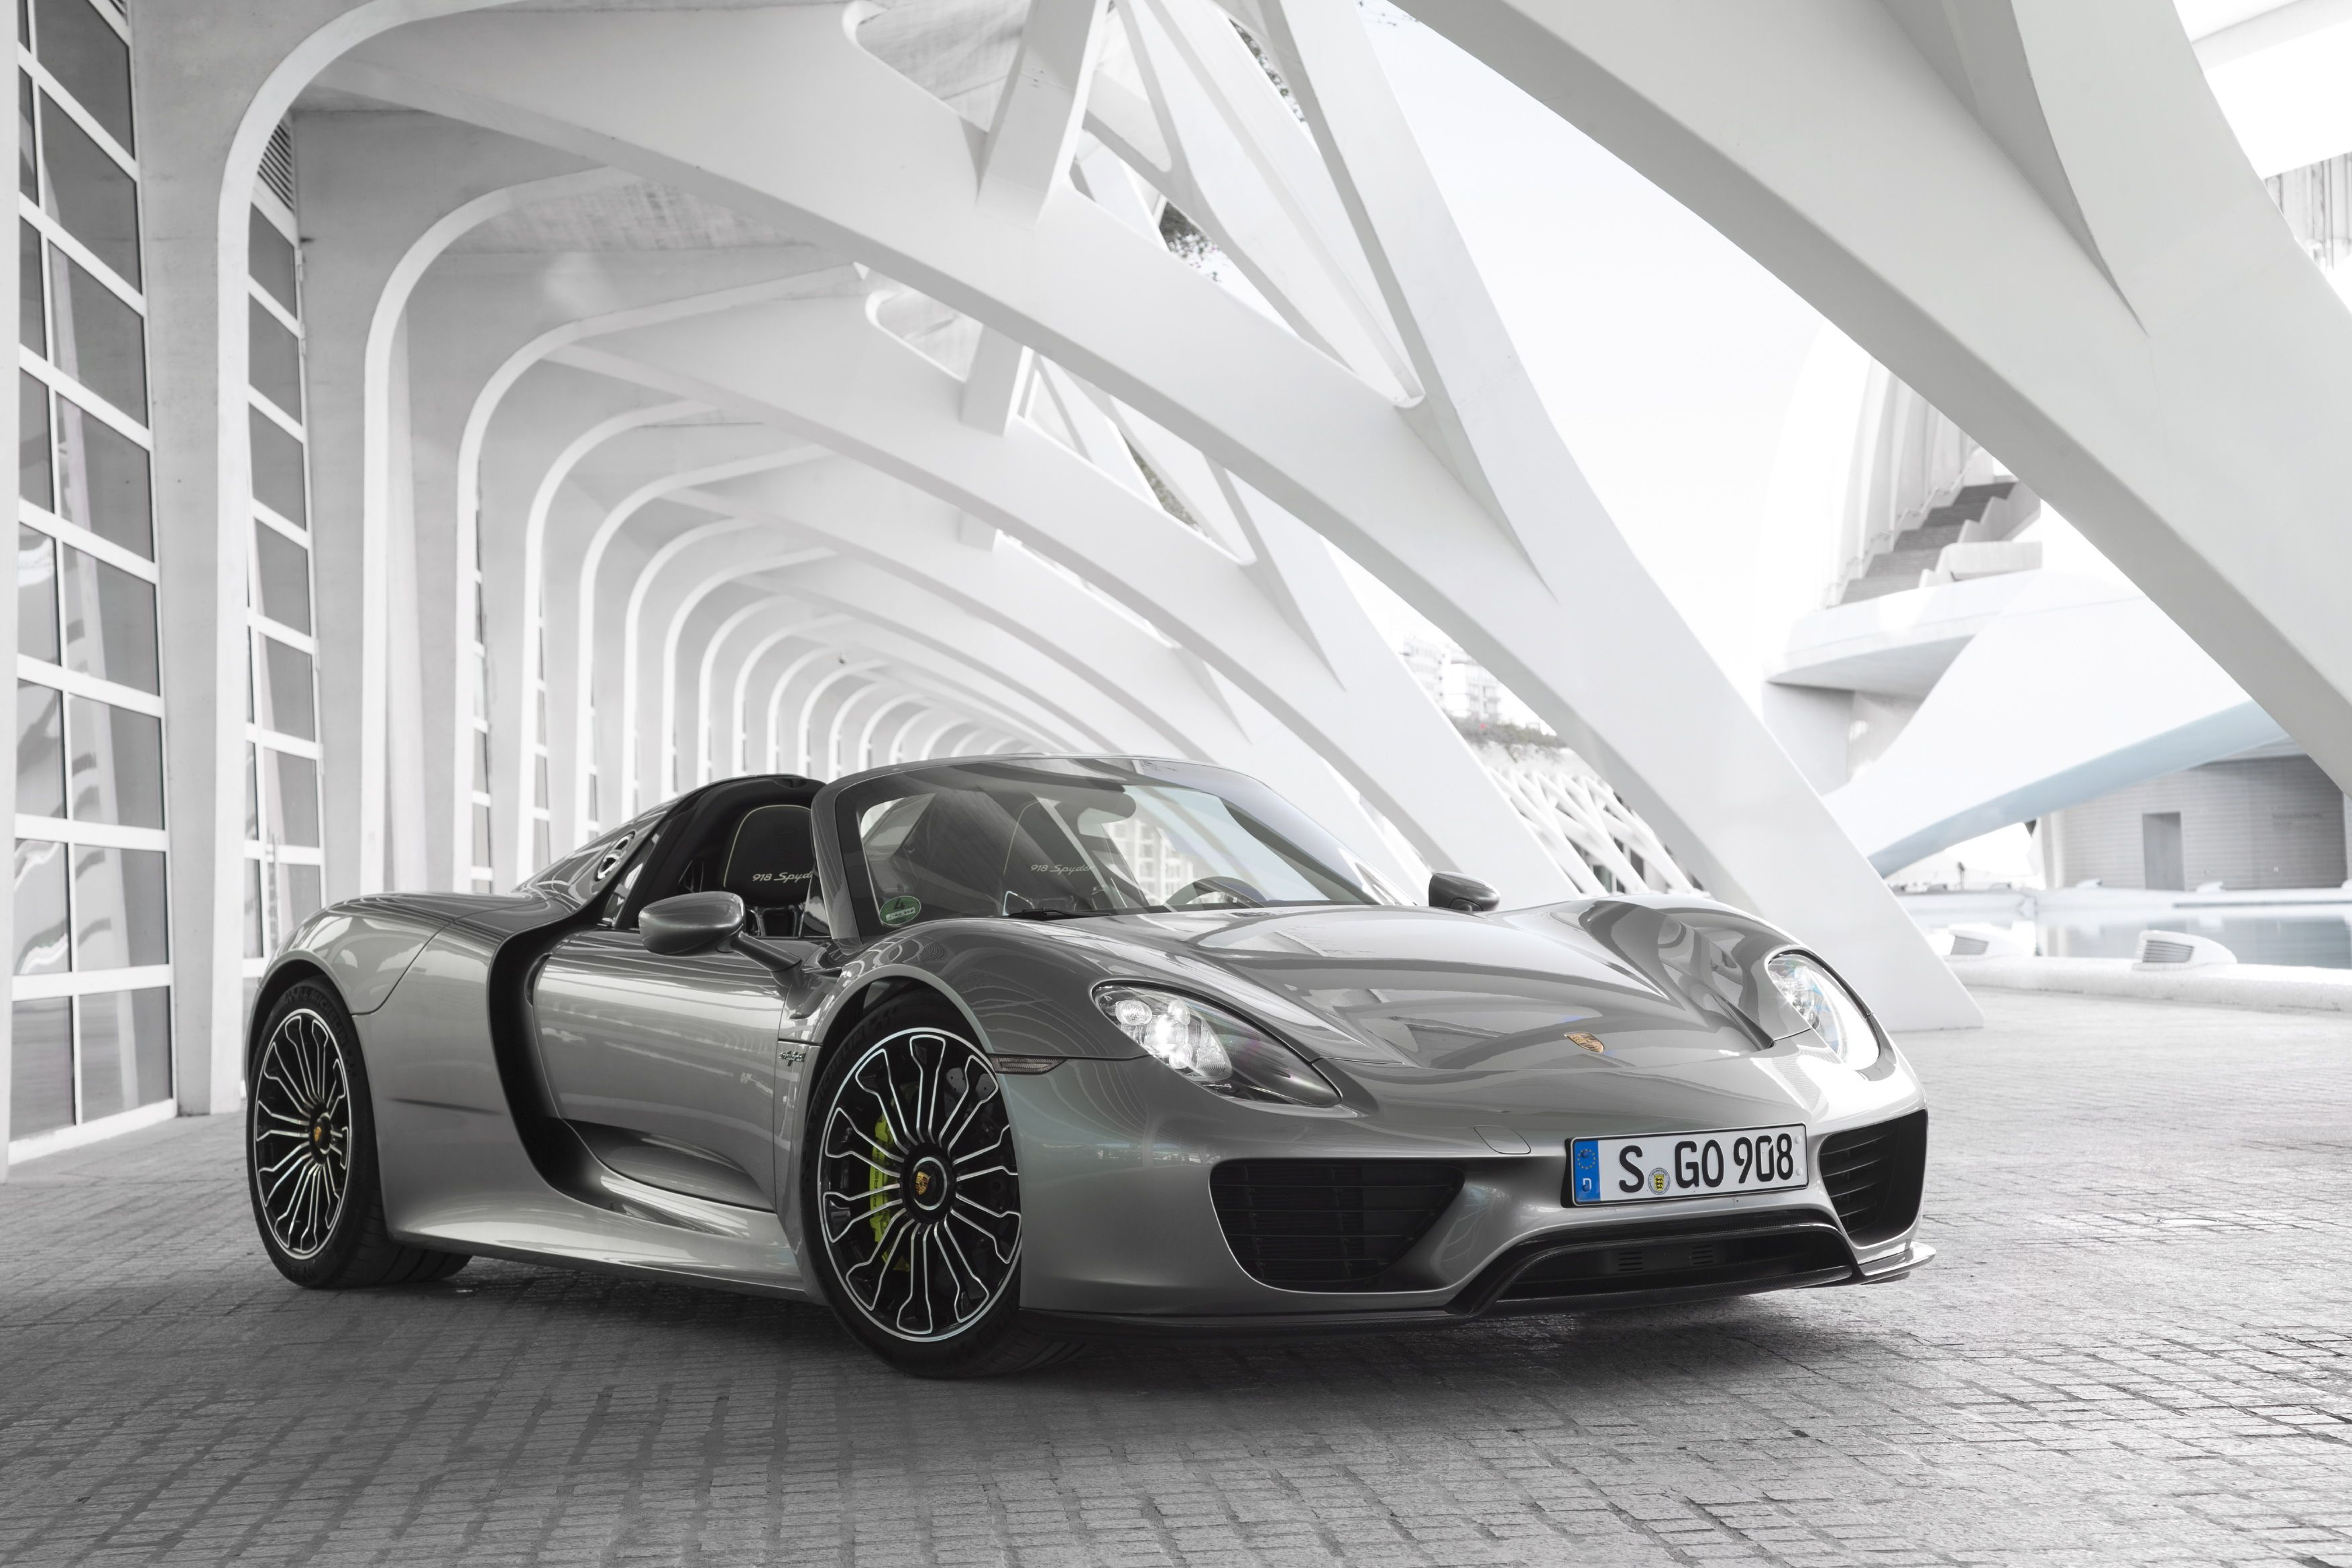 The Fastest Cars You Can Buy In - Fastest sports cars 0 60